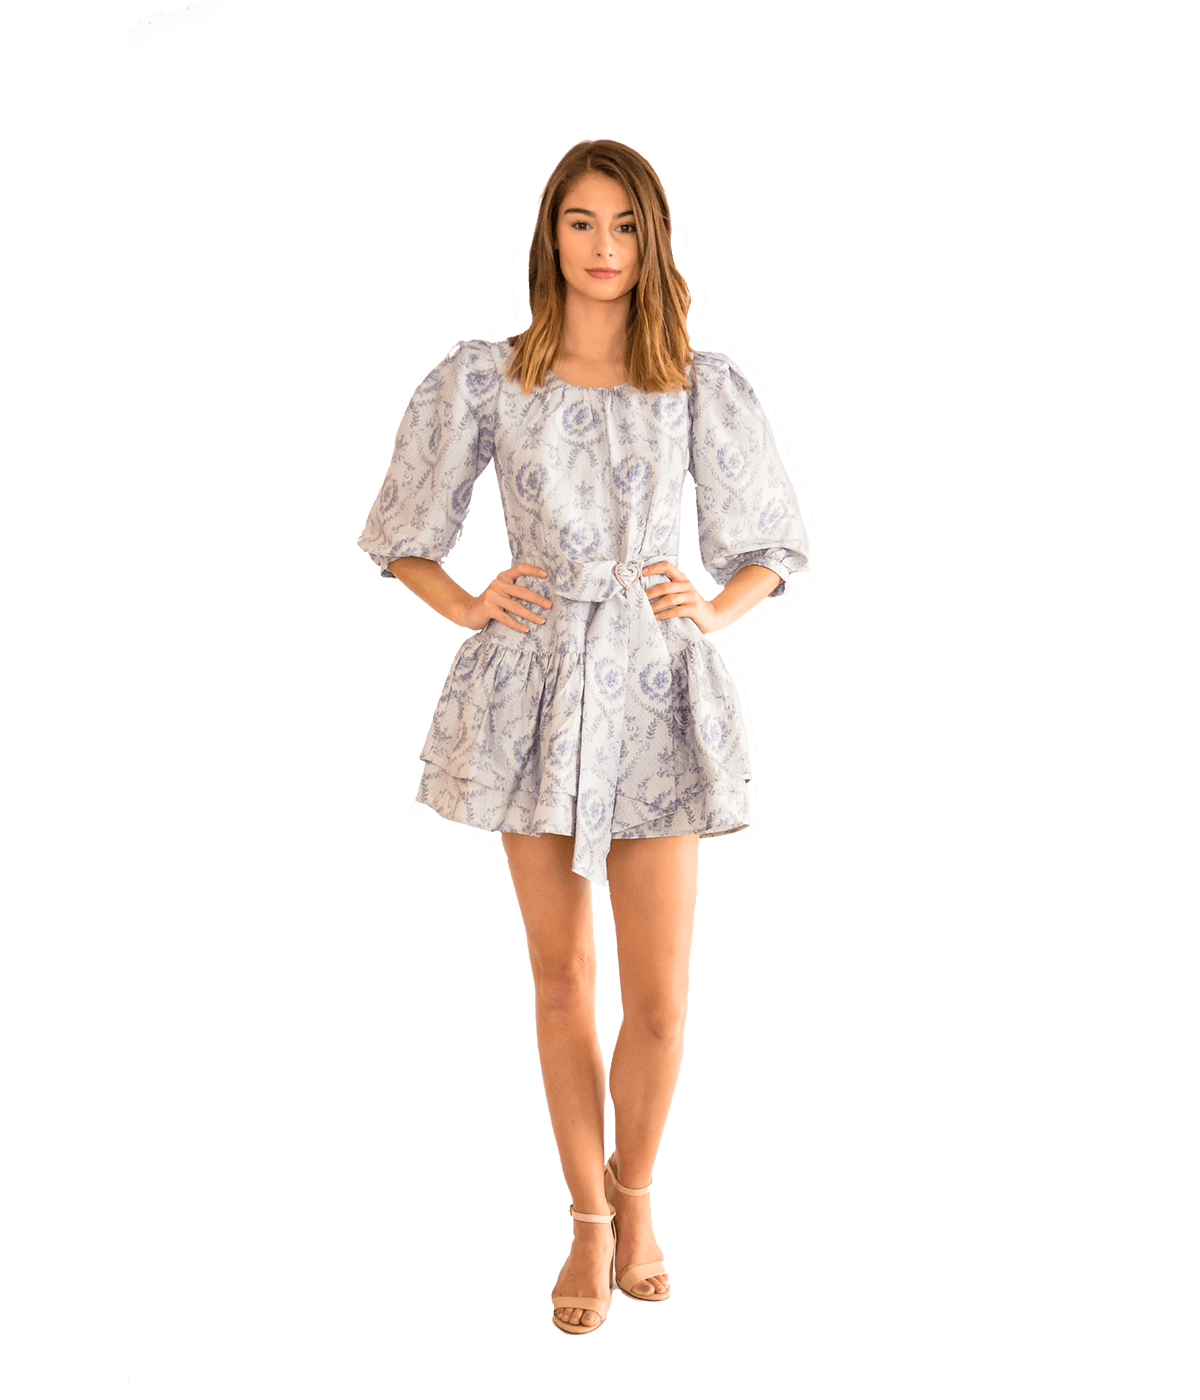 Pearla Dress - Lady Jetset